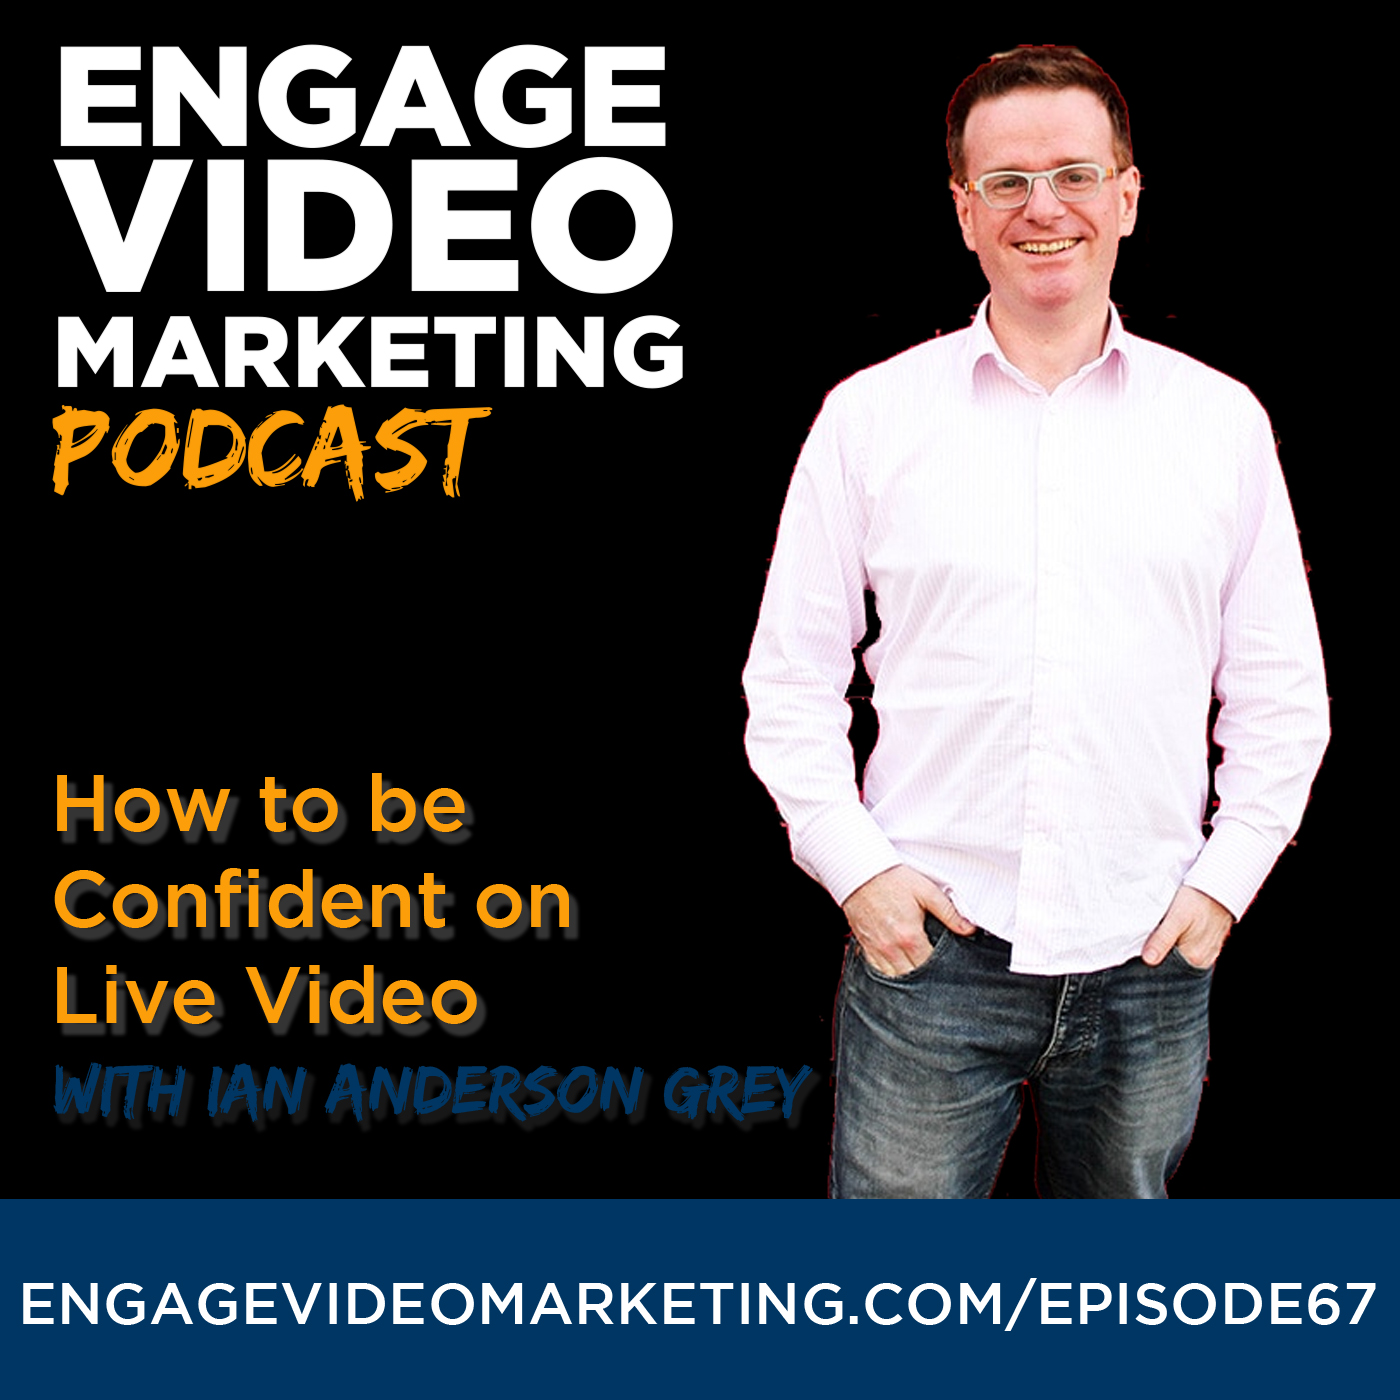 How to be Confident on Live Video with Ian Anderson Grey